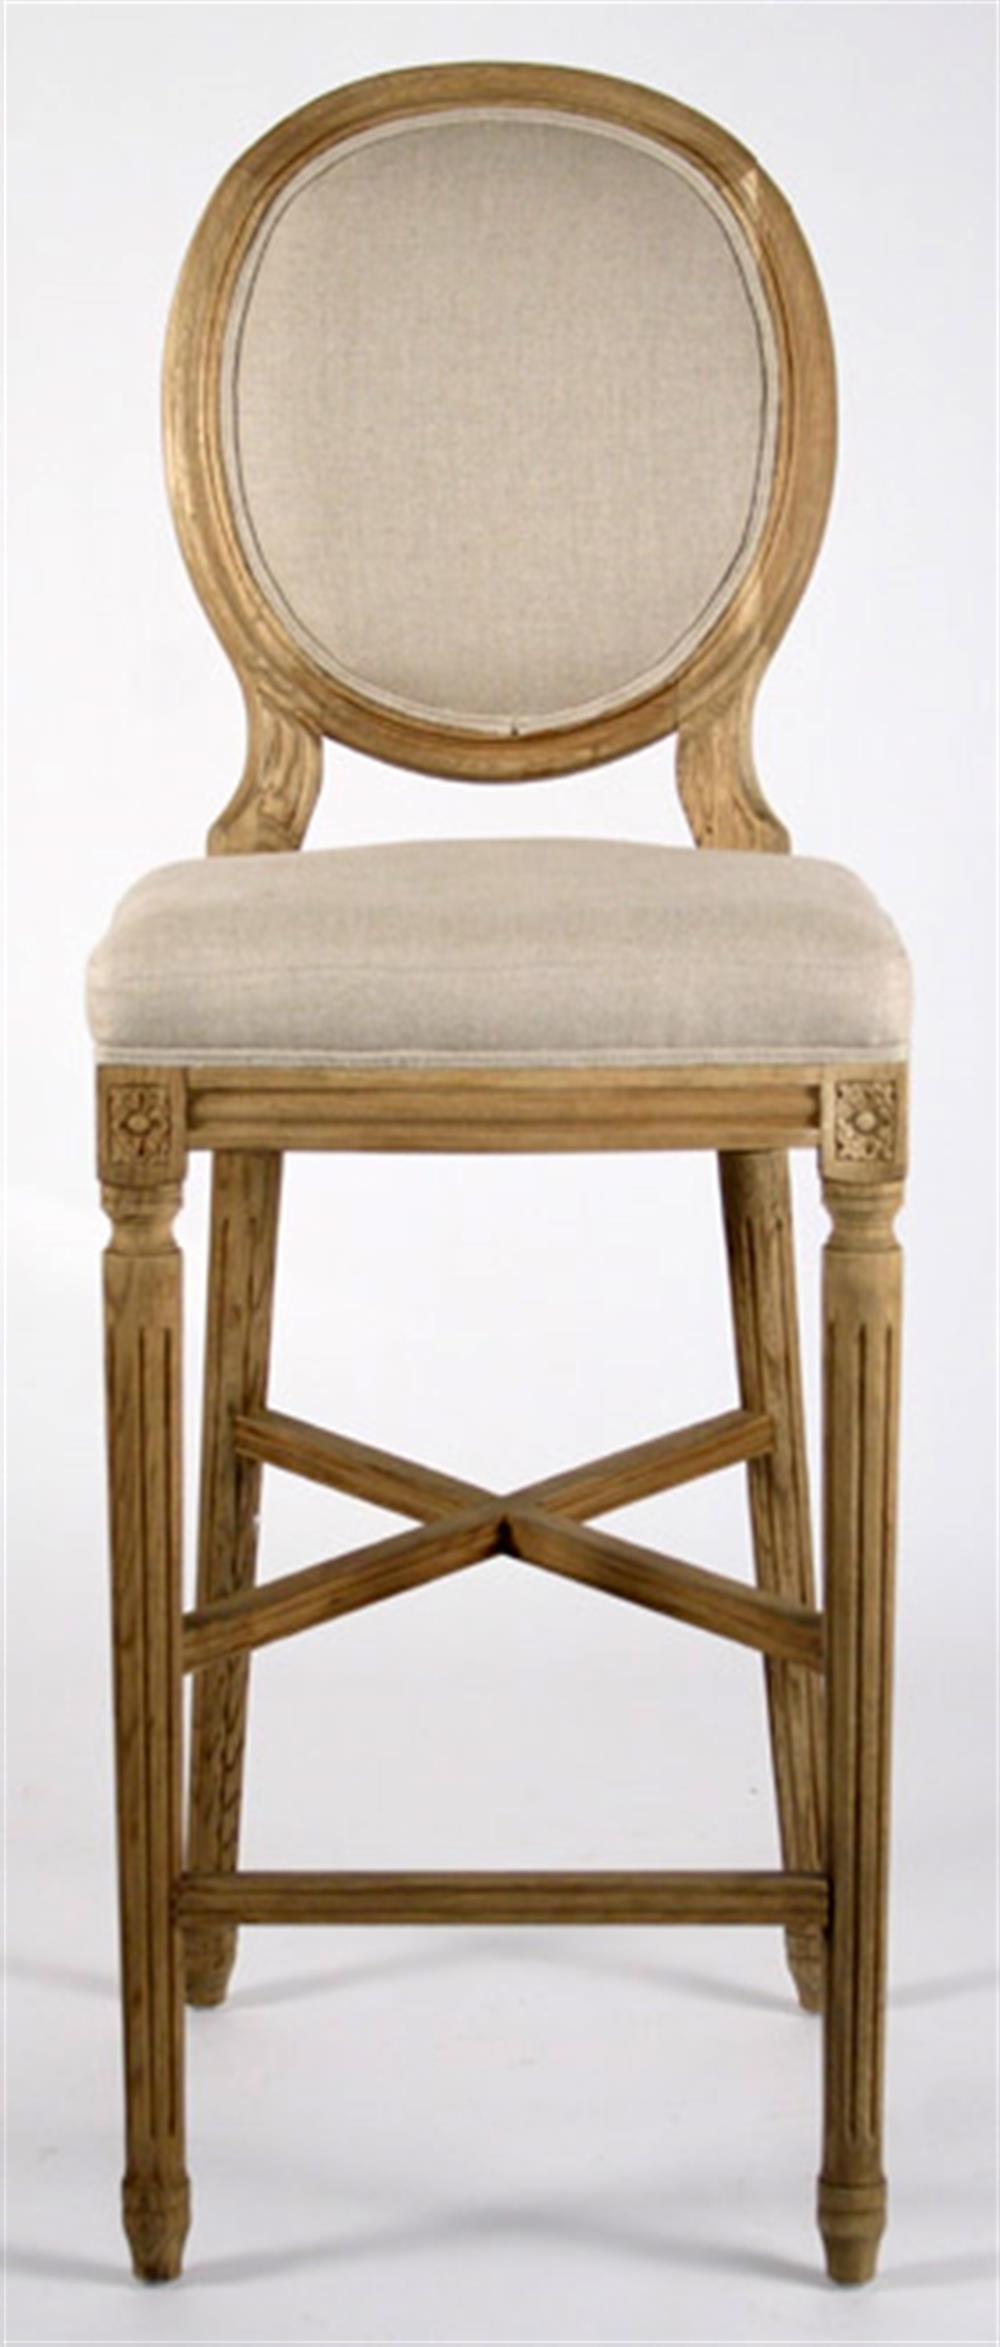 Furniture: Velvet Stool | French Country Counter Stools | French Inside French Country Counter Stools Decor For Your Kitchen (Image 16 of 20)